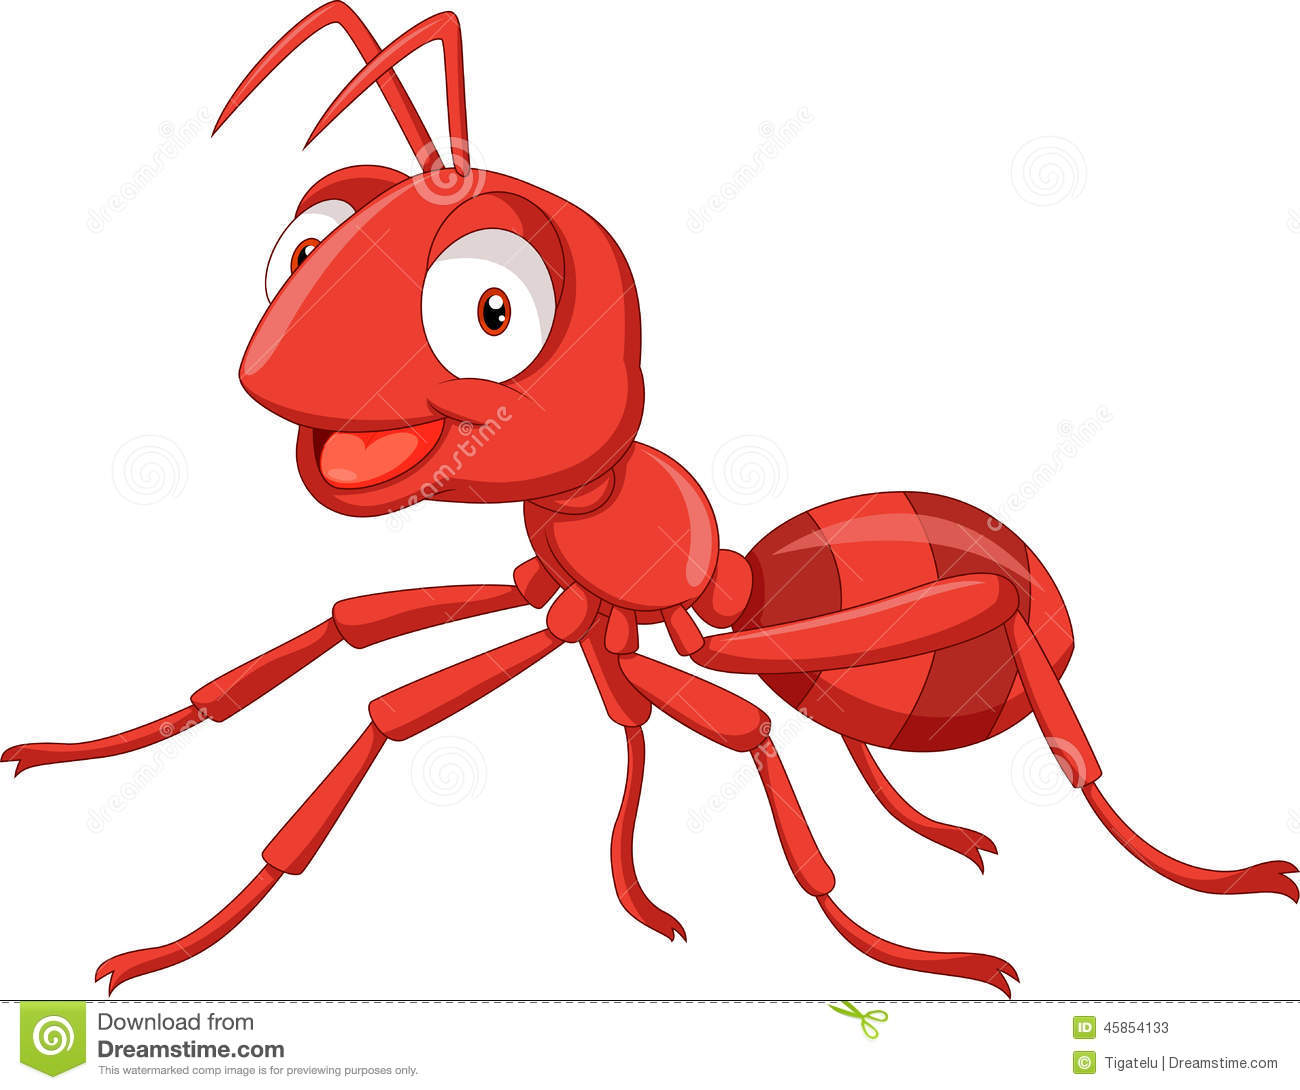 Red Ants Clipart-Red Ants Clipart-18